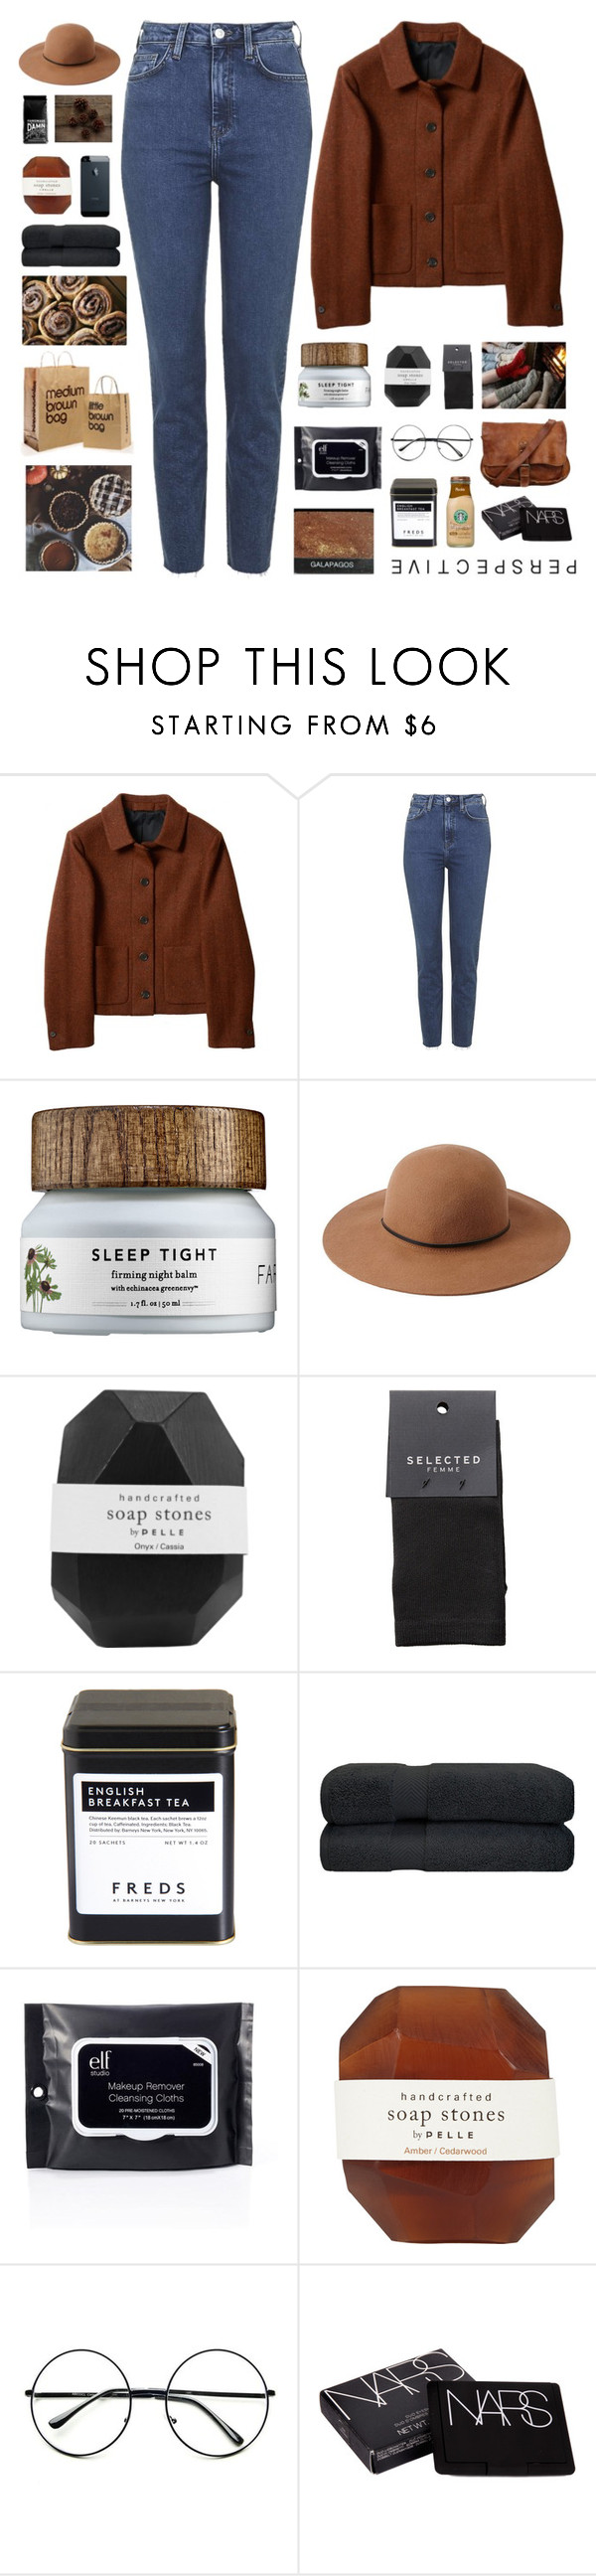 """""""Tori"""" by organized ❤ liked on Polyvore featuring Topshop, Forever 21, Pelle, SELECTED, FREDS at Barneys New York, Bloomingville, Retrò and NARS Cosmetics"""